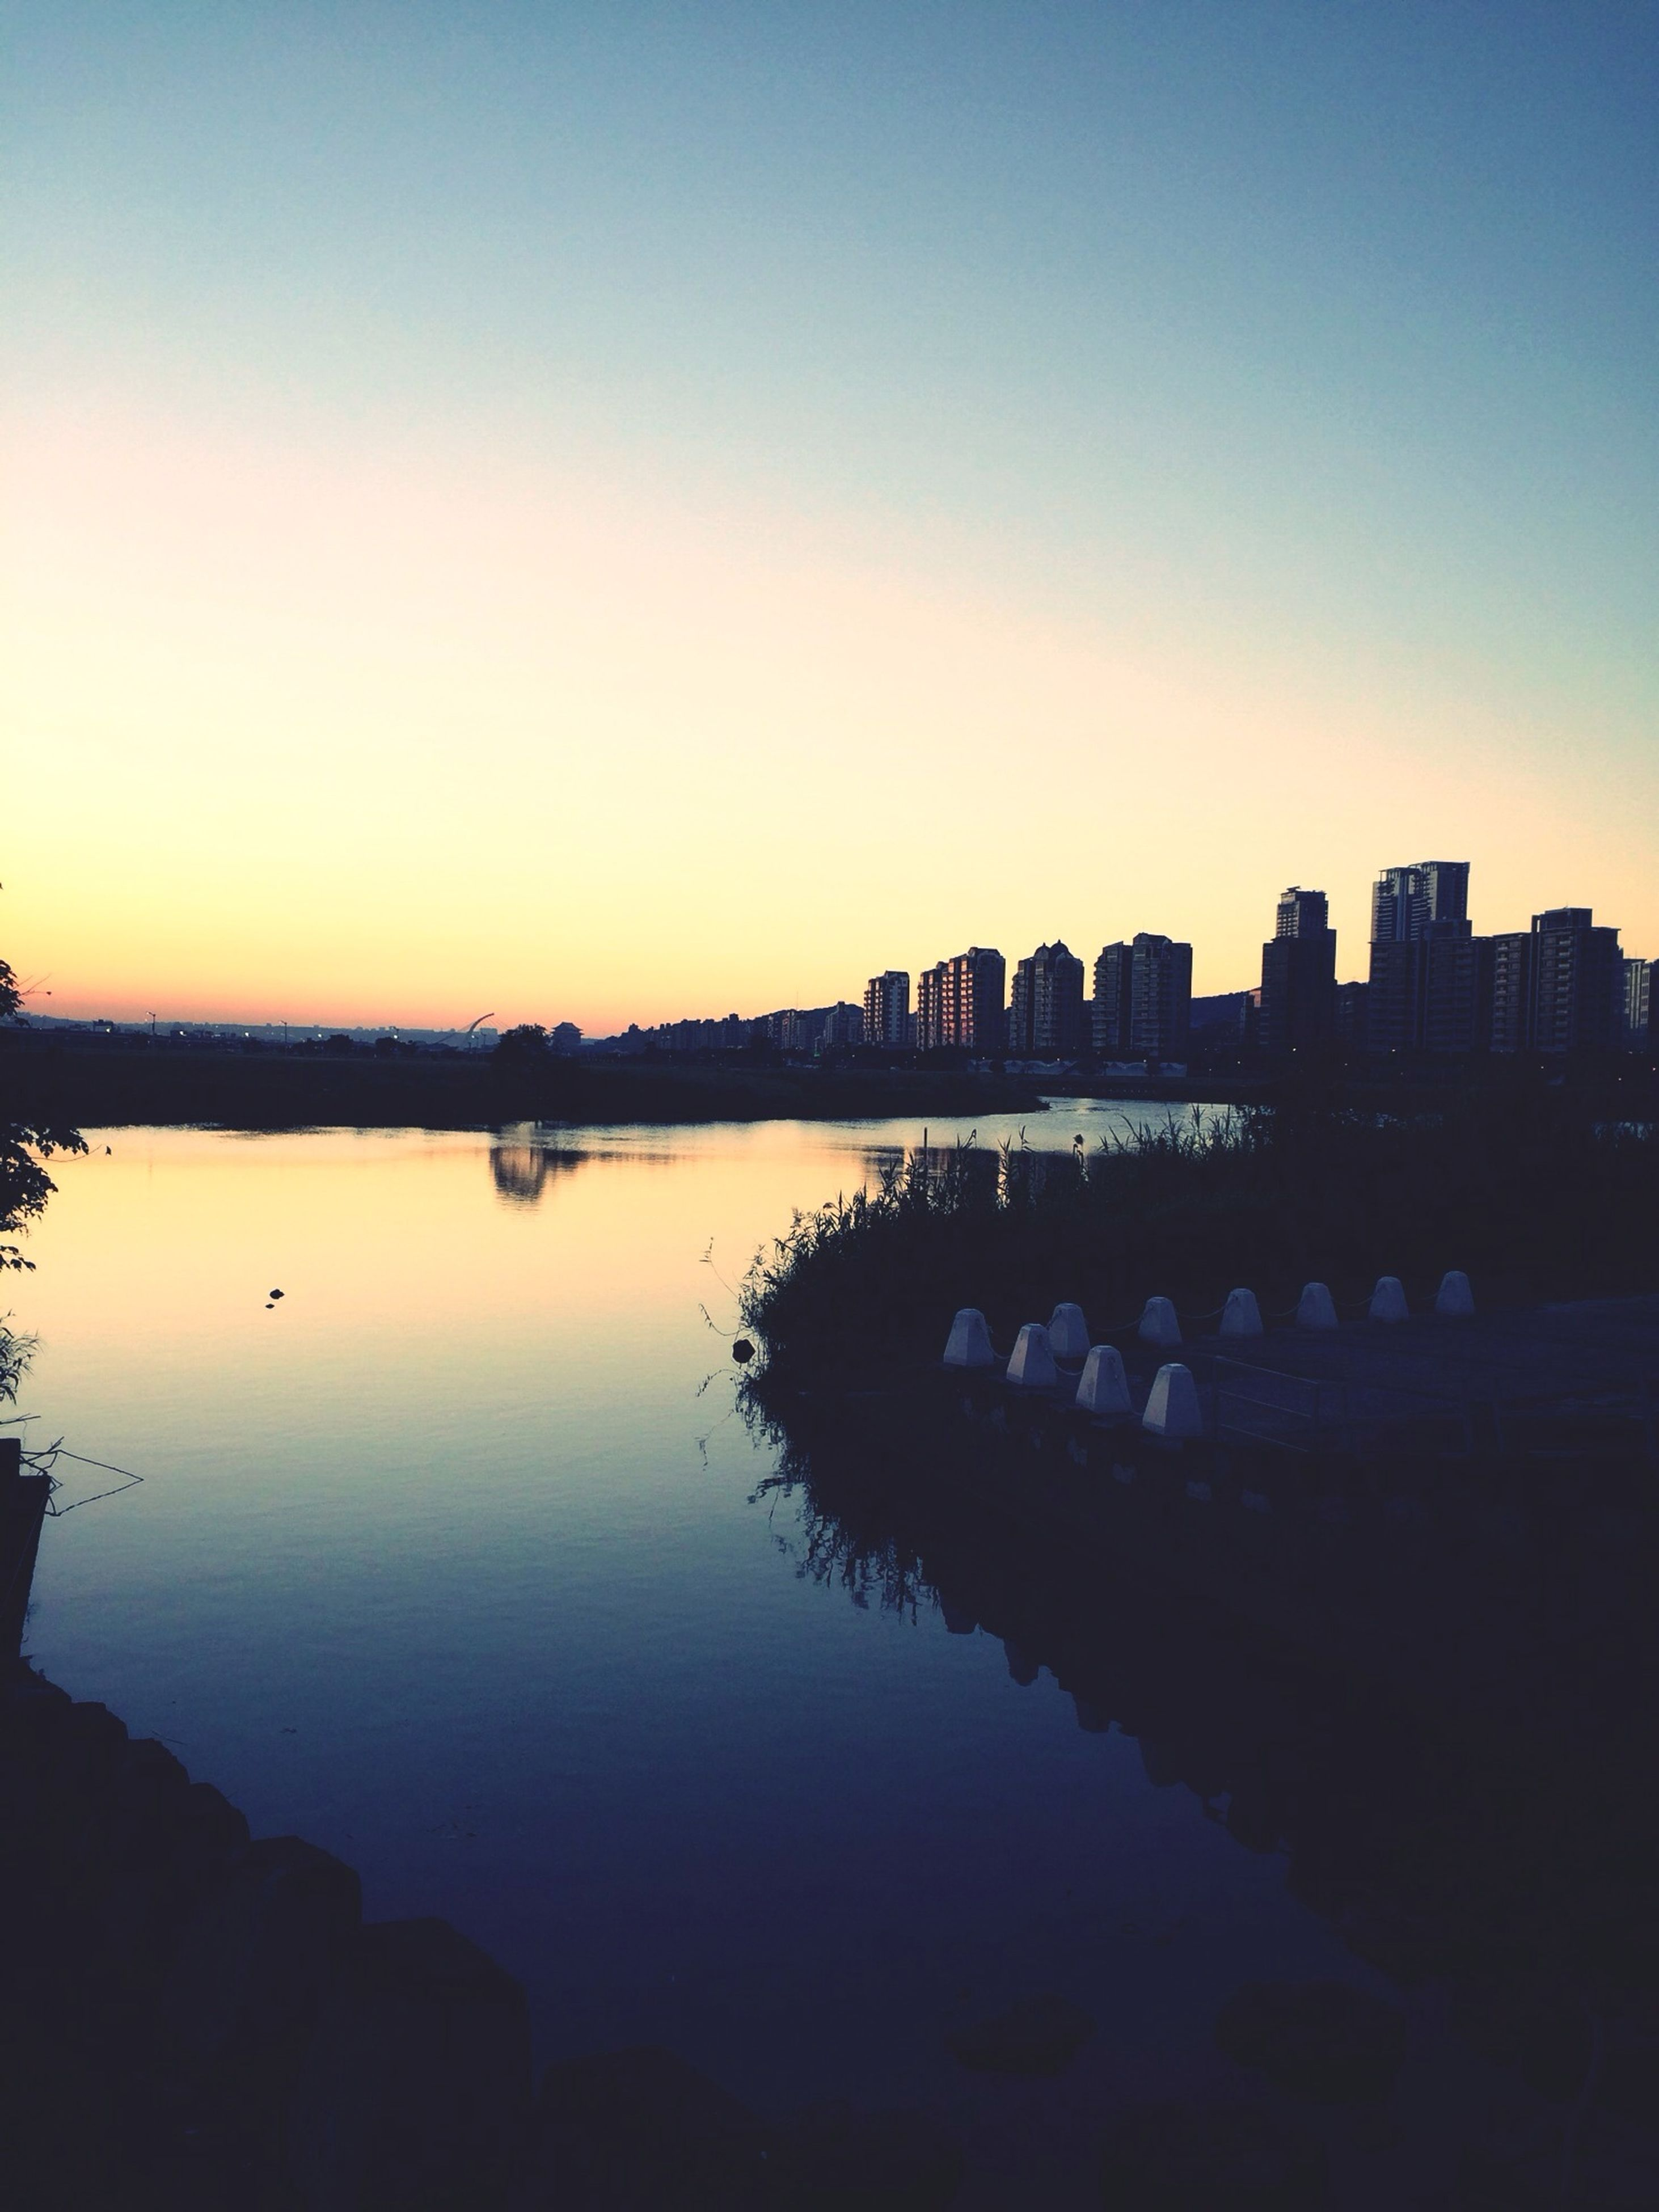 water, silhouette, sunset, clear sky, reflection, copy space, built structure, architecture, building exterior, tranquility, dusk, tranquil scene, river, lake, scenics, nature, standing water, waterfront, beauty in nature, sky